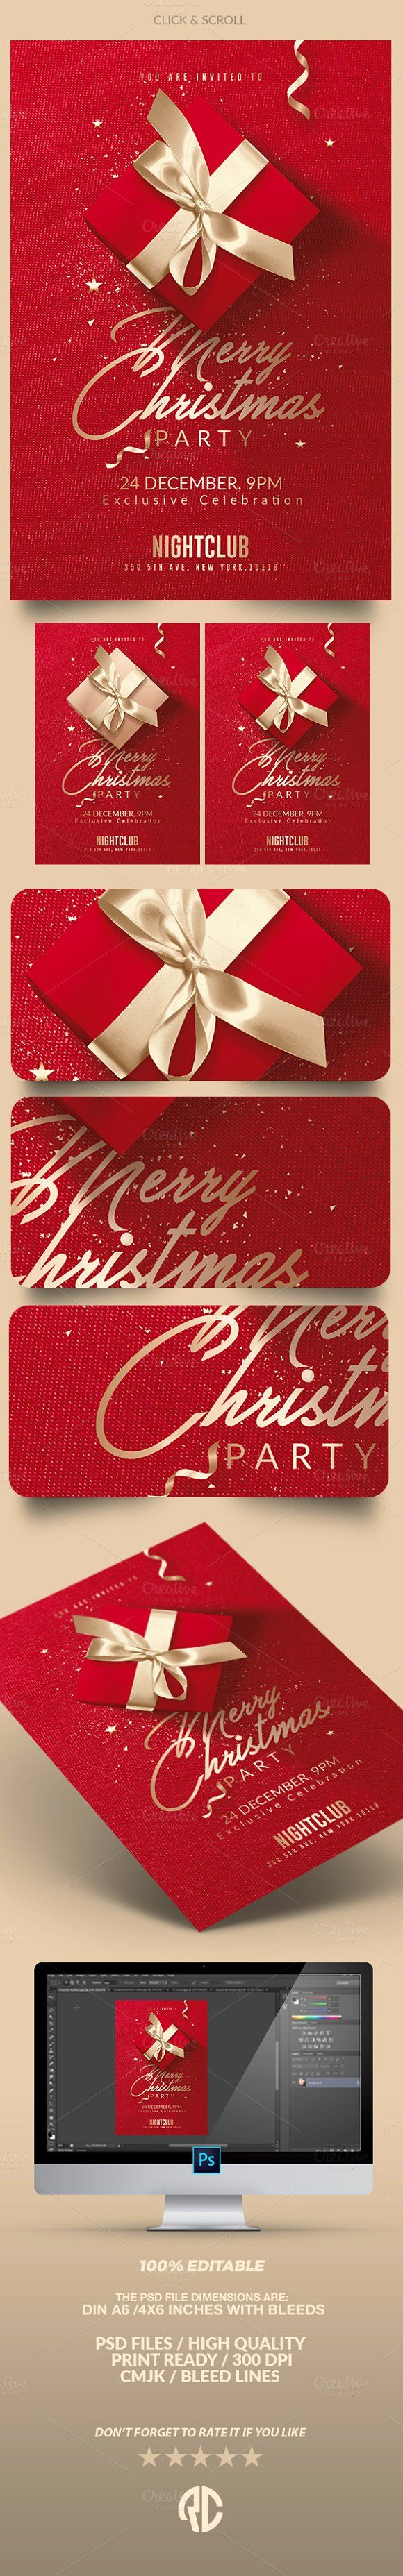 Amazing ! Red Christmas - Invitation by @romecreation on @CreativeMarket https://crmrkt.com/68Eeg #christmas #creativemarket #xmas2016